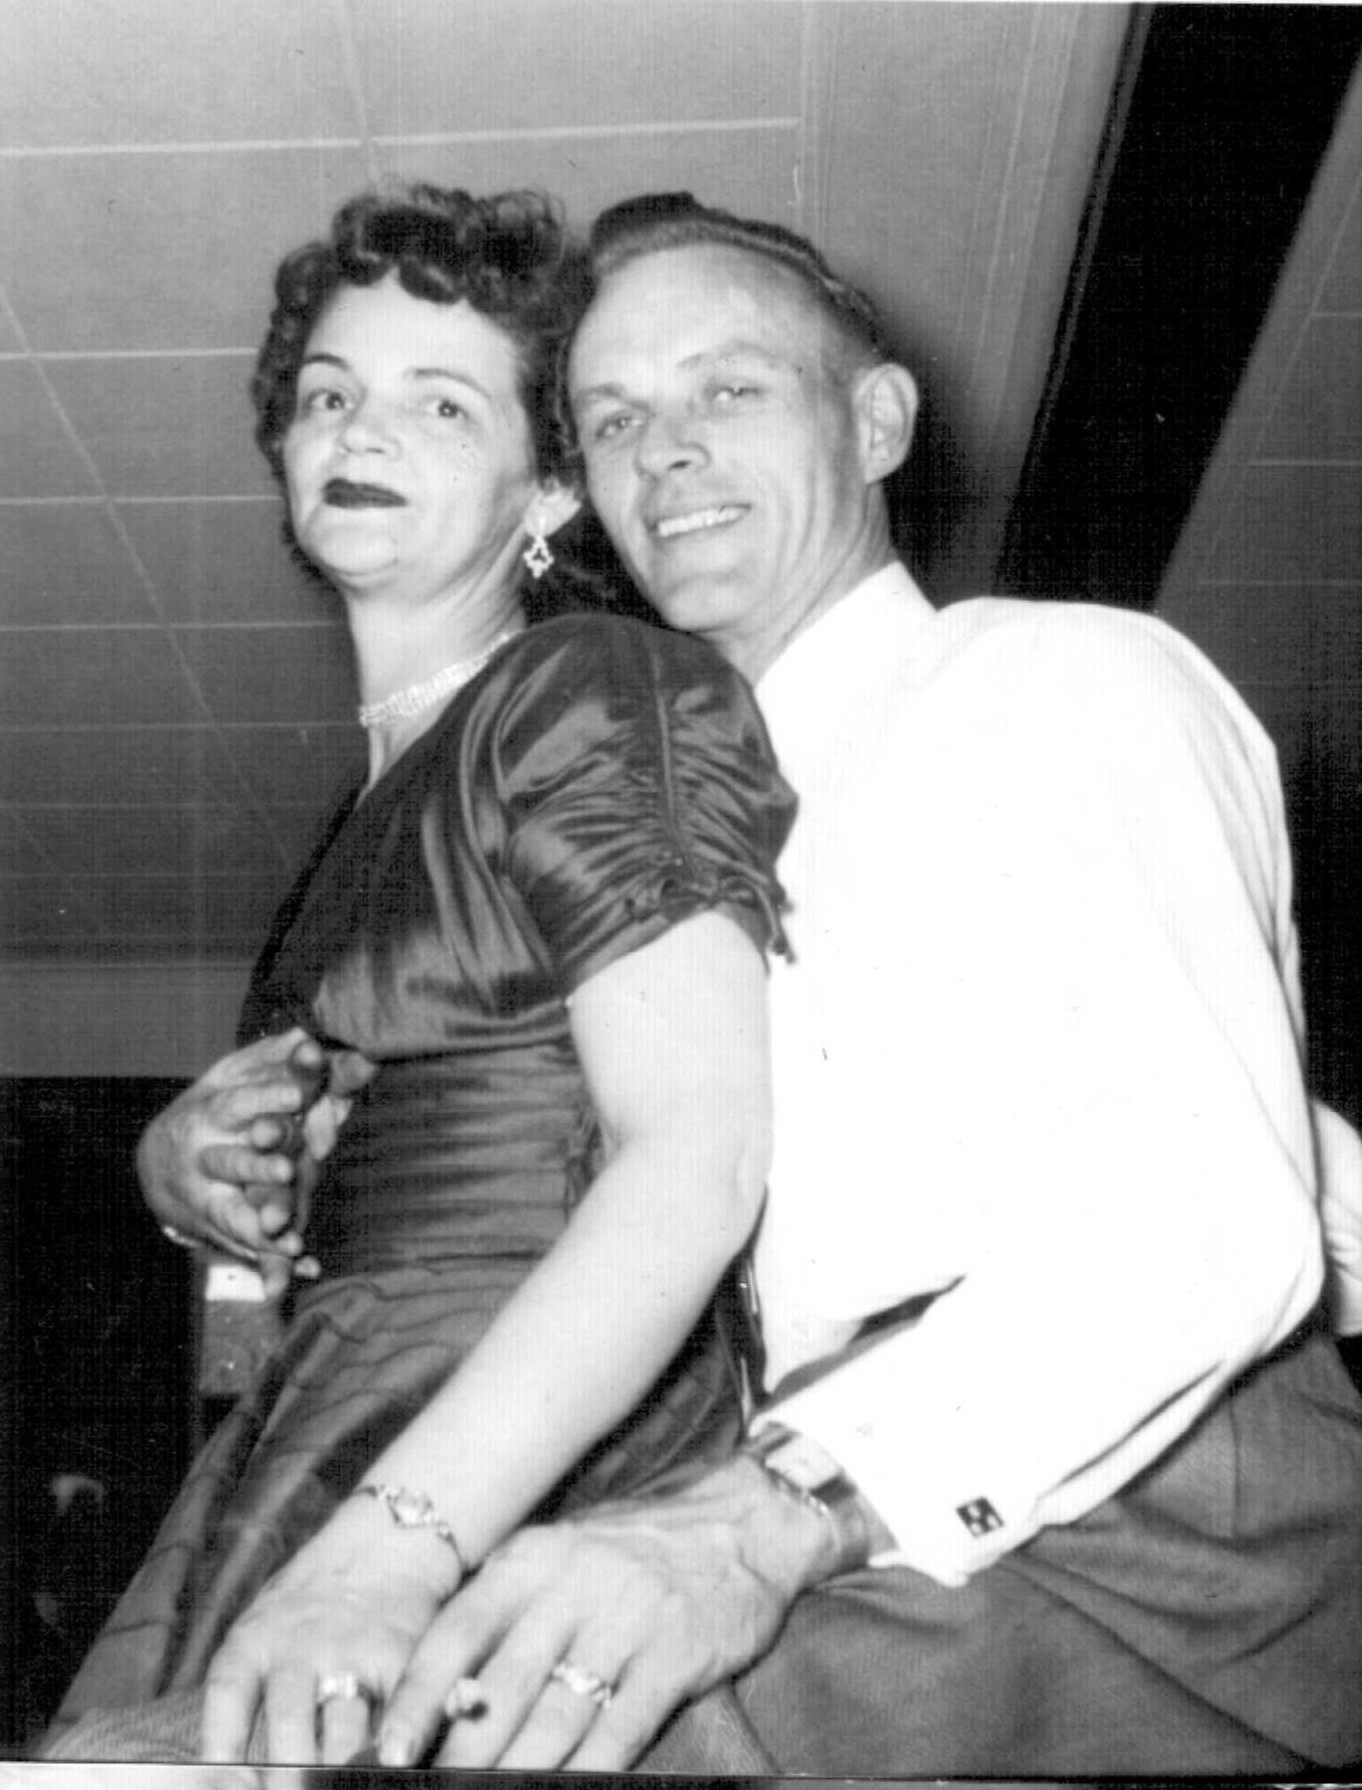 Emily and ?? Benscoter